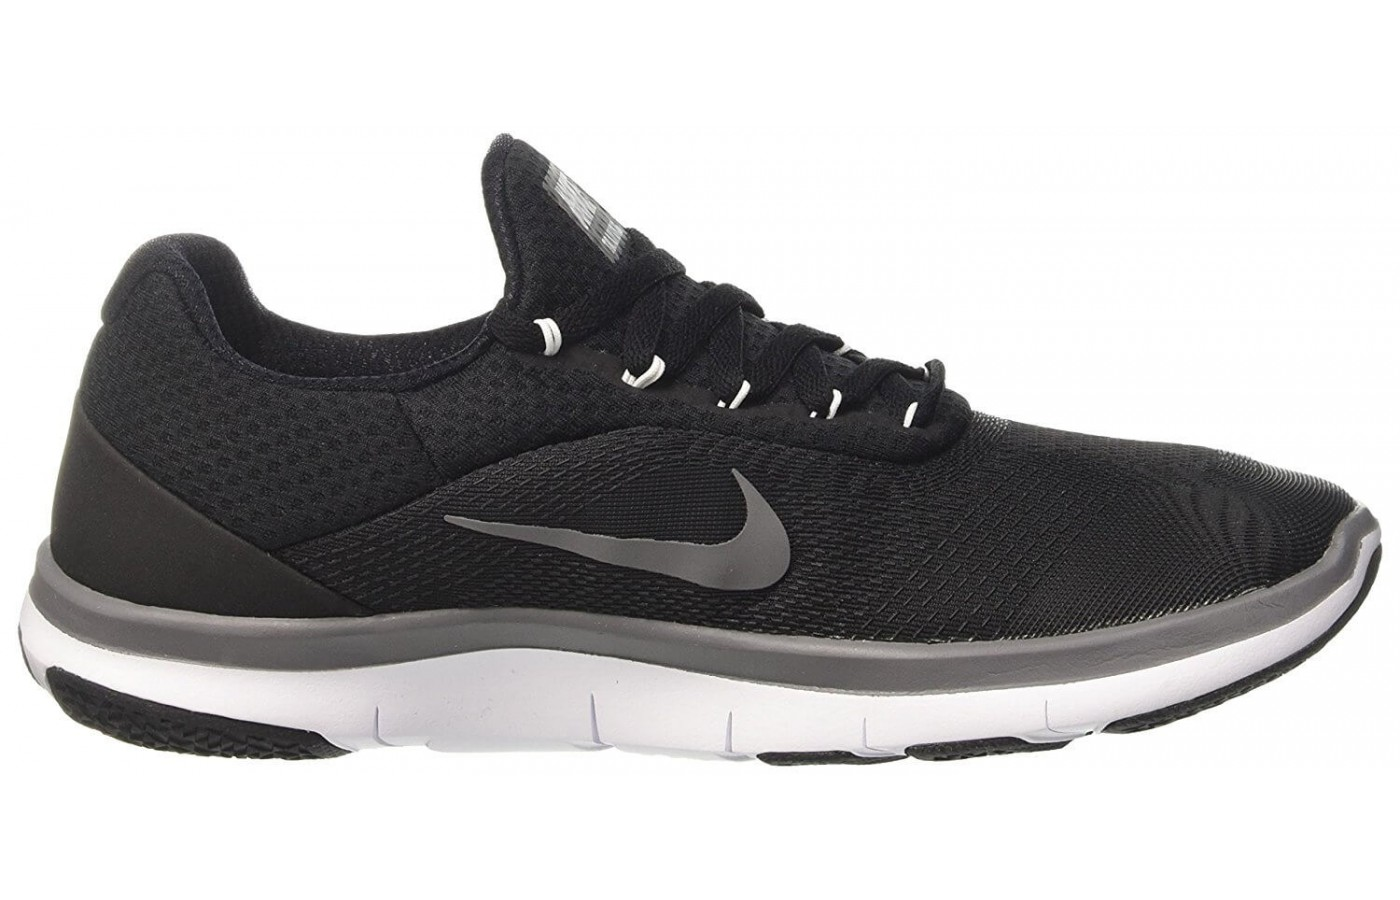 655fd3d2f6 ... The Nike Free Trainer V7 features a minimalist design